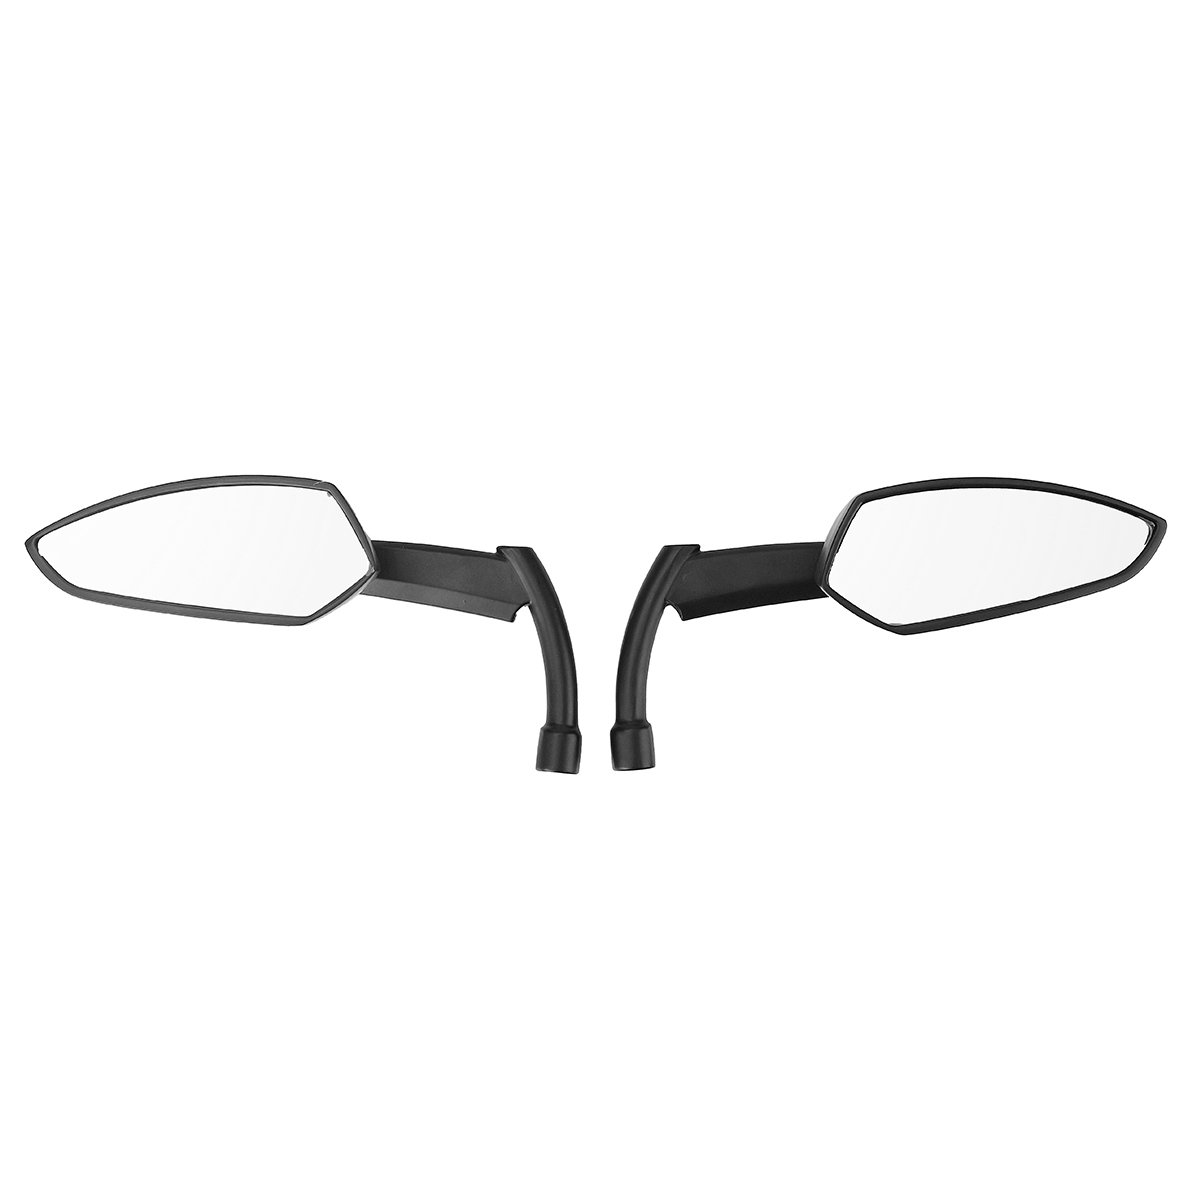 8MM 10MM Black CNC Blade Rear Review Mirrors For Harley Dyna Heritage Softail Sportster